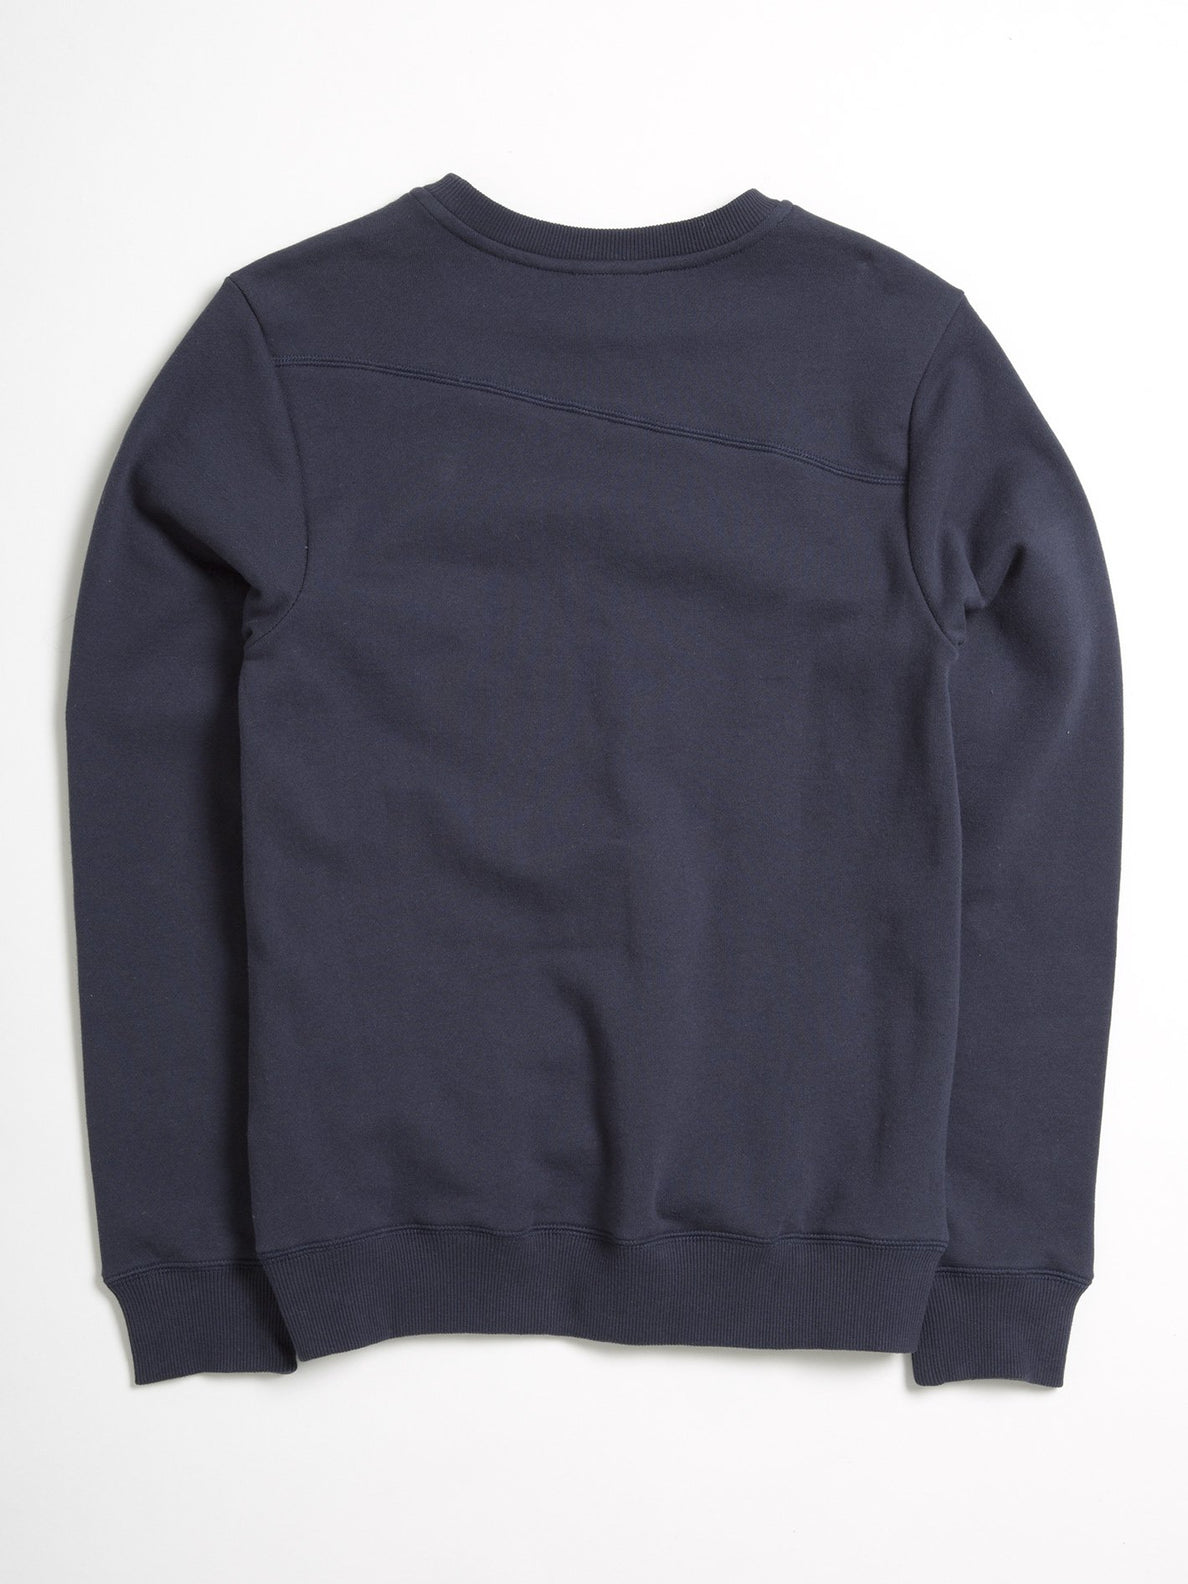 Stone Crew Sweater (Kids) - Navy